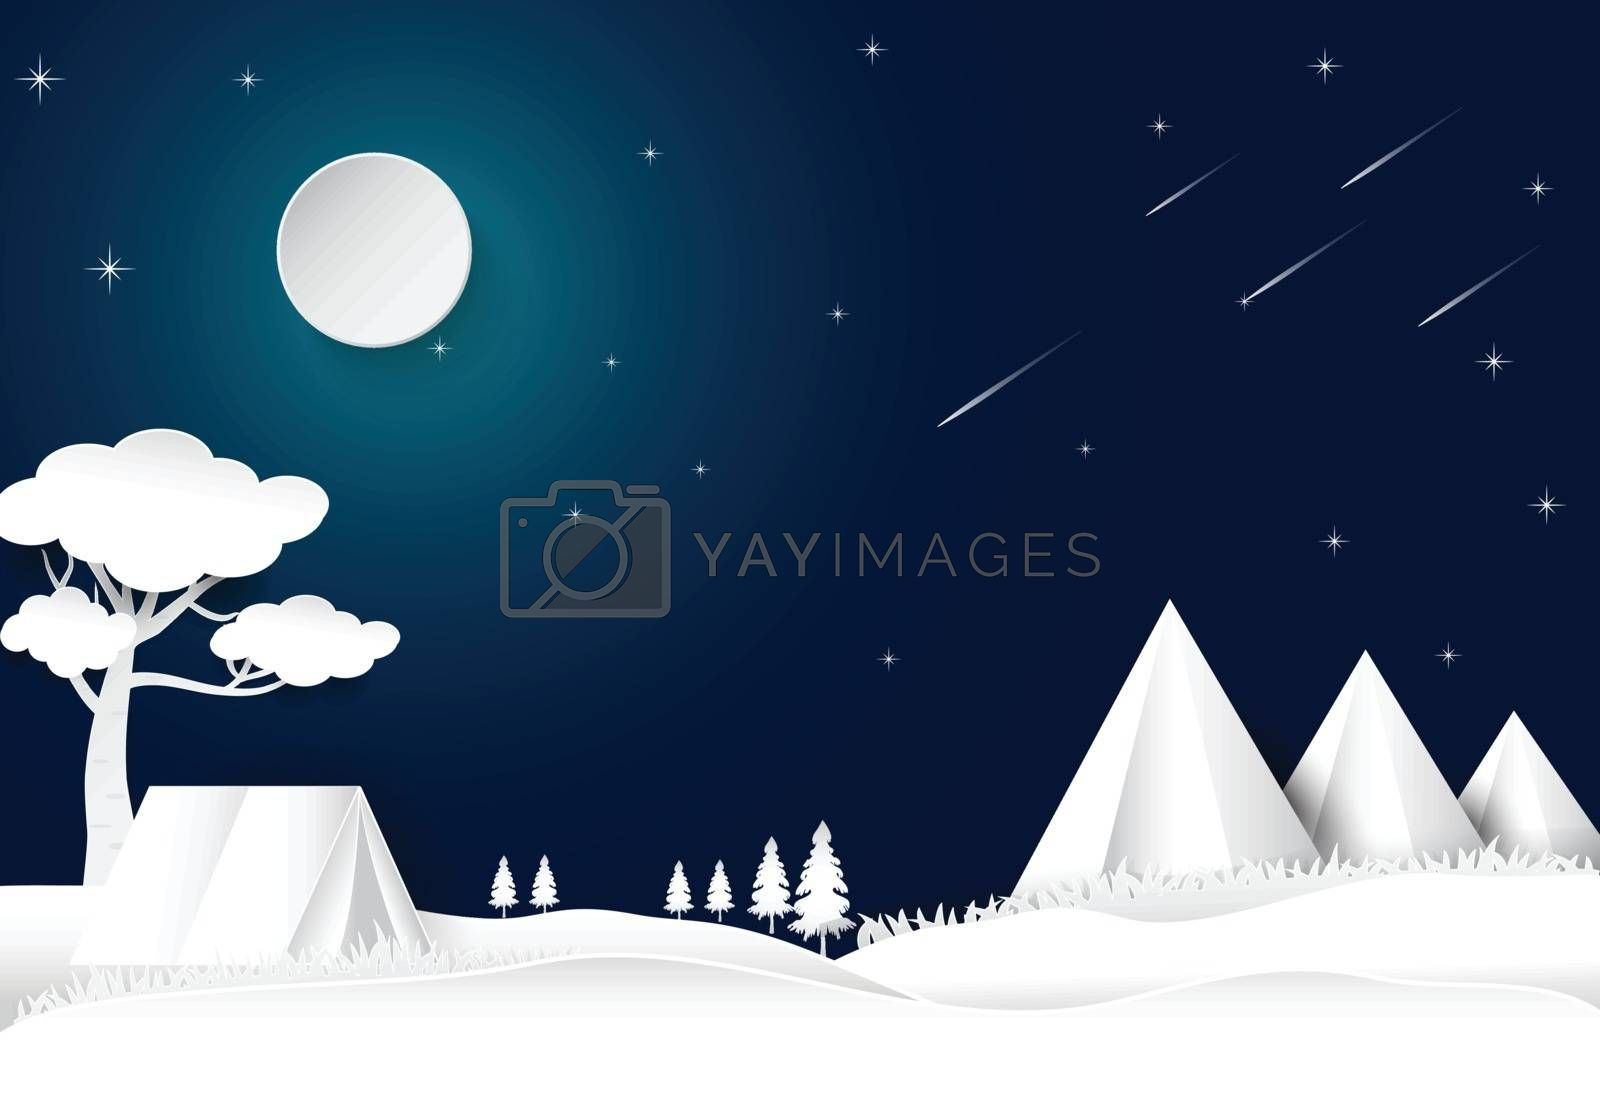 Camping on hill night sky with star and comet, landscape backgro by Kheat